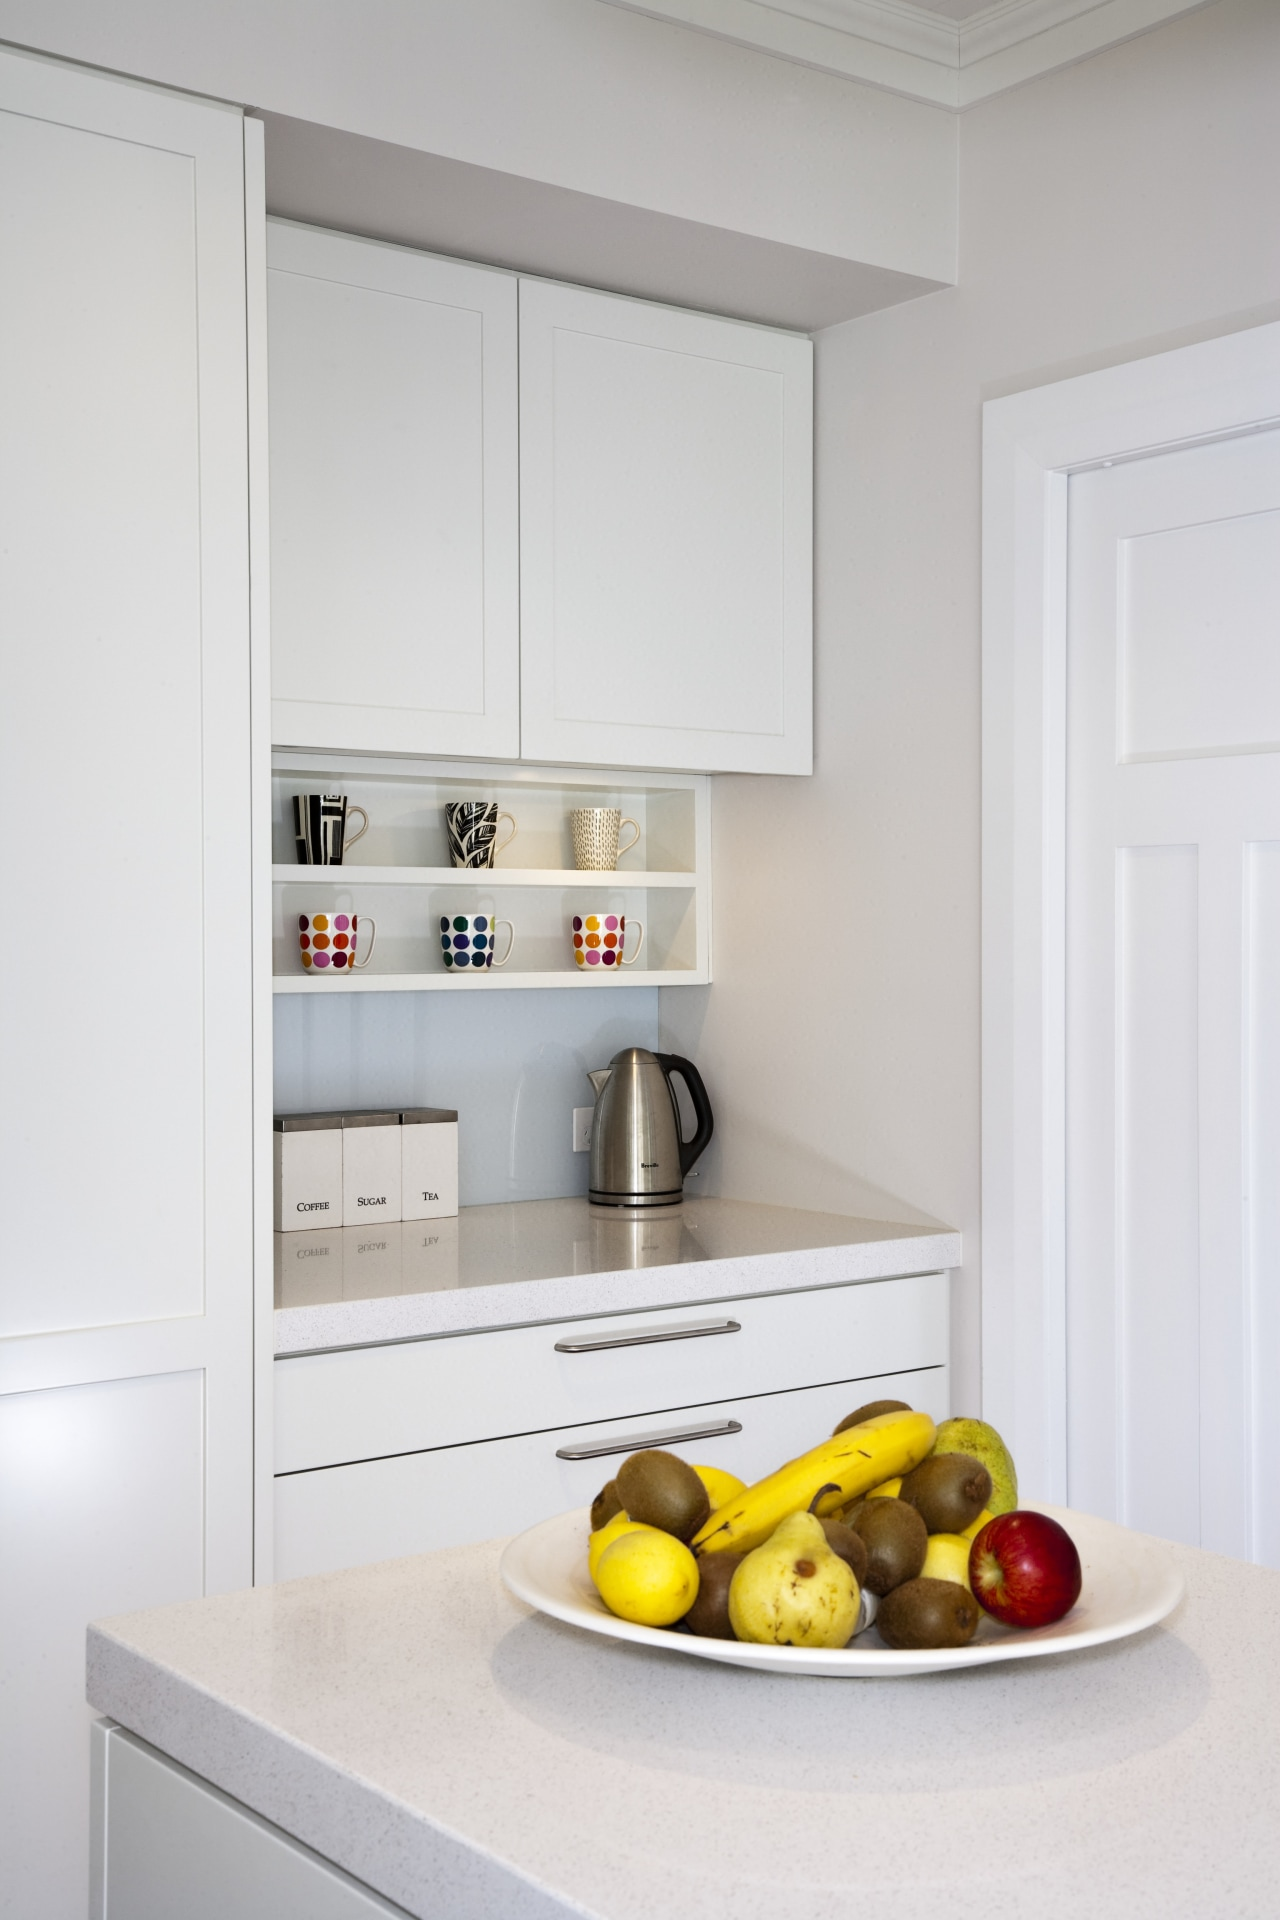 This new kitchen, by RH Cabinetmakers, features traditionally countertop, home appliance, interior design, kitchen, kitchen appliance, room, gray, white